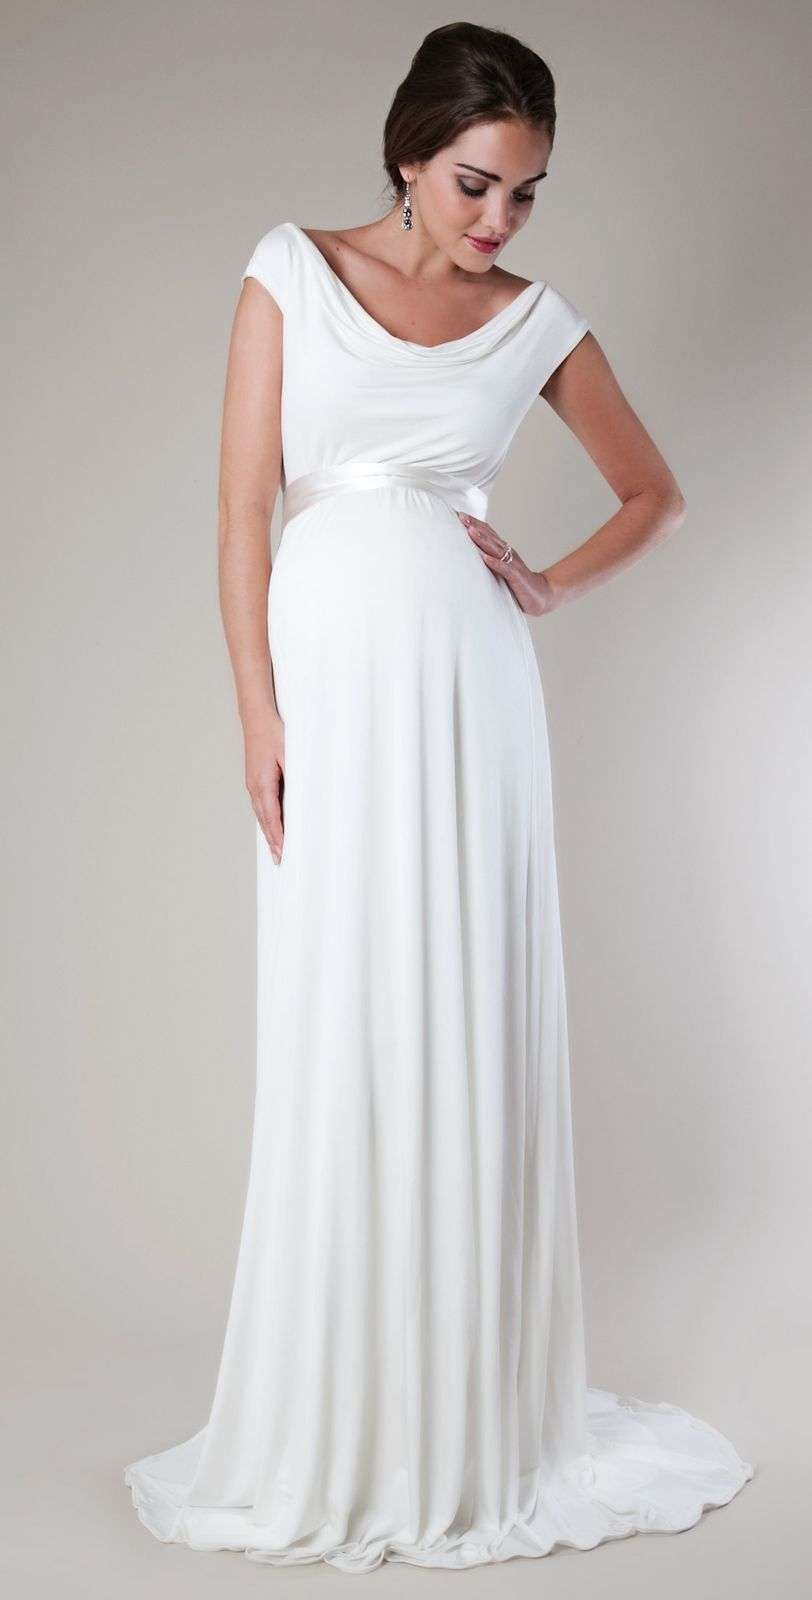 Casual wedding dress with sleeves  Casual Wedding Dresses for Summer Ideas  Vestido de noiva